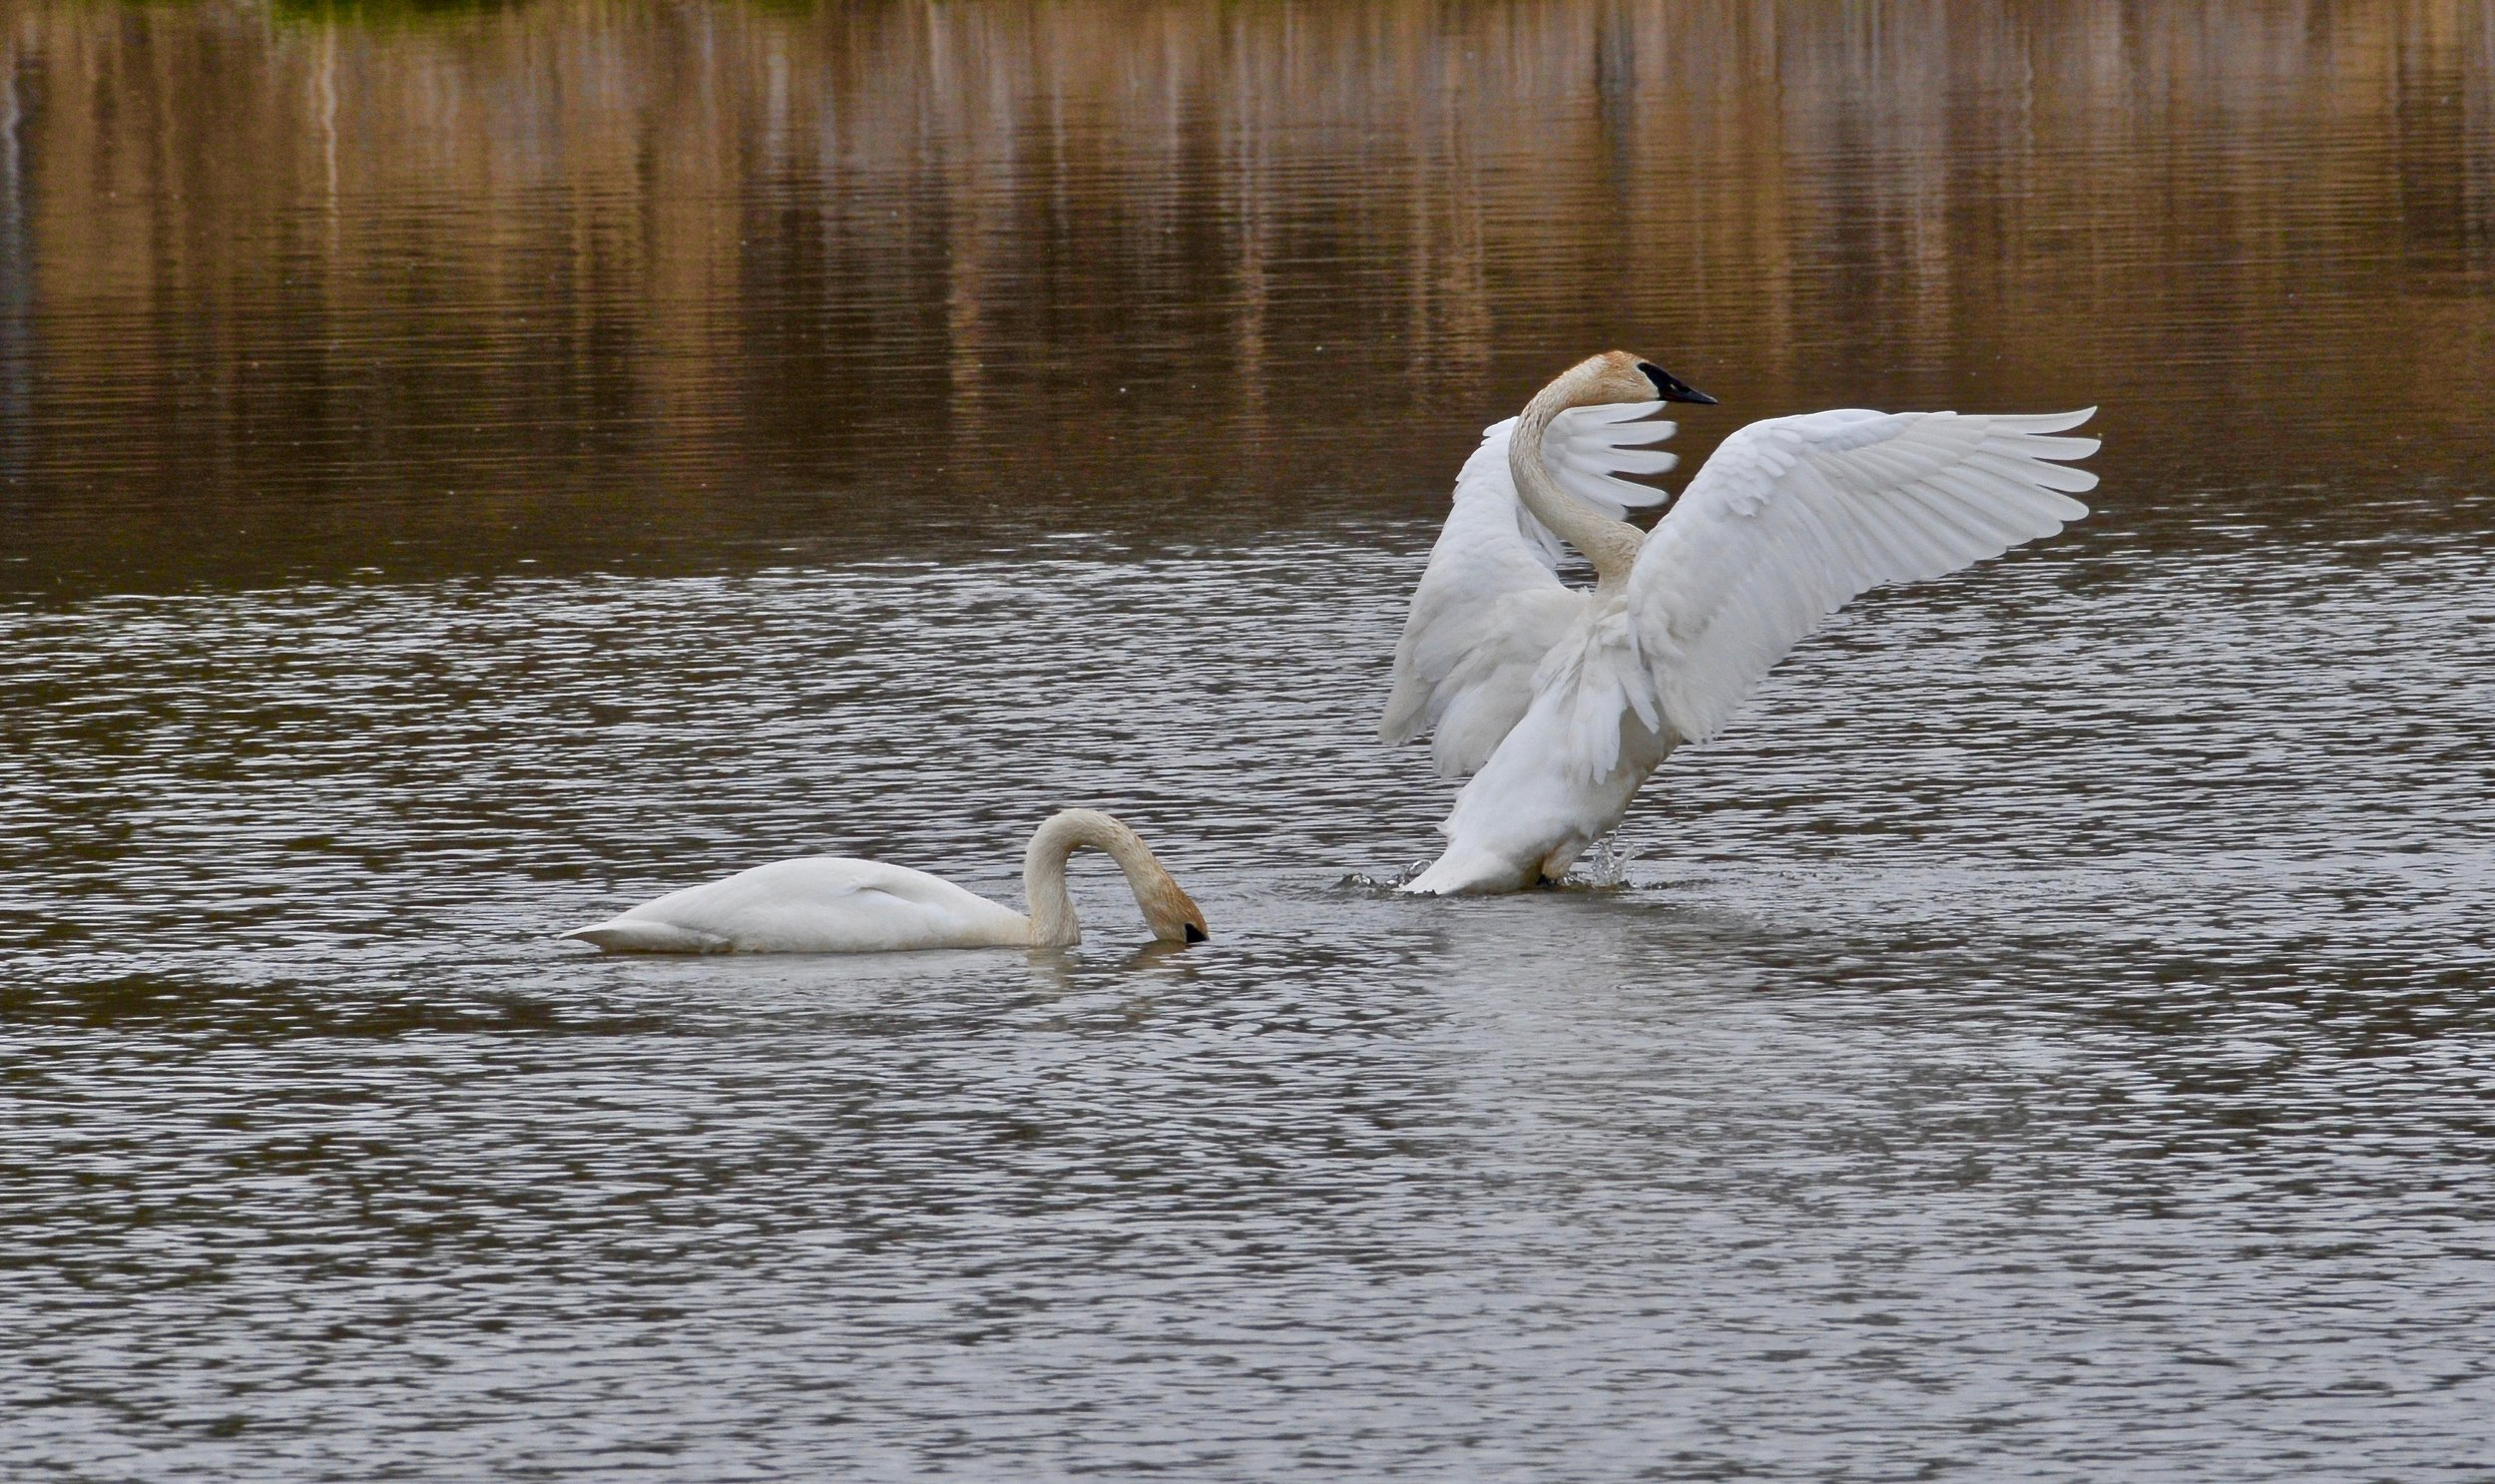 The trumpeter swan is an 'at-risk' species visitors might be able to see in the sanctuary. (Pam Wight)